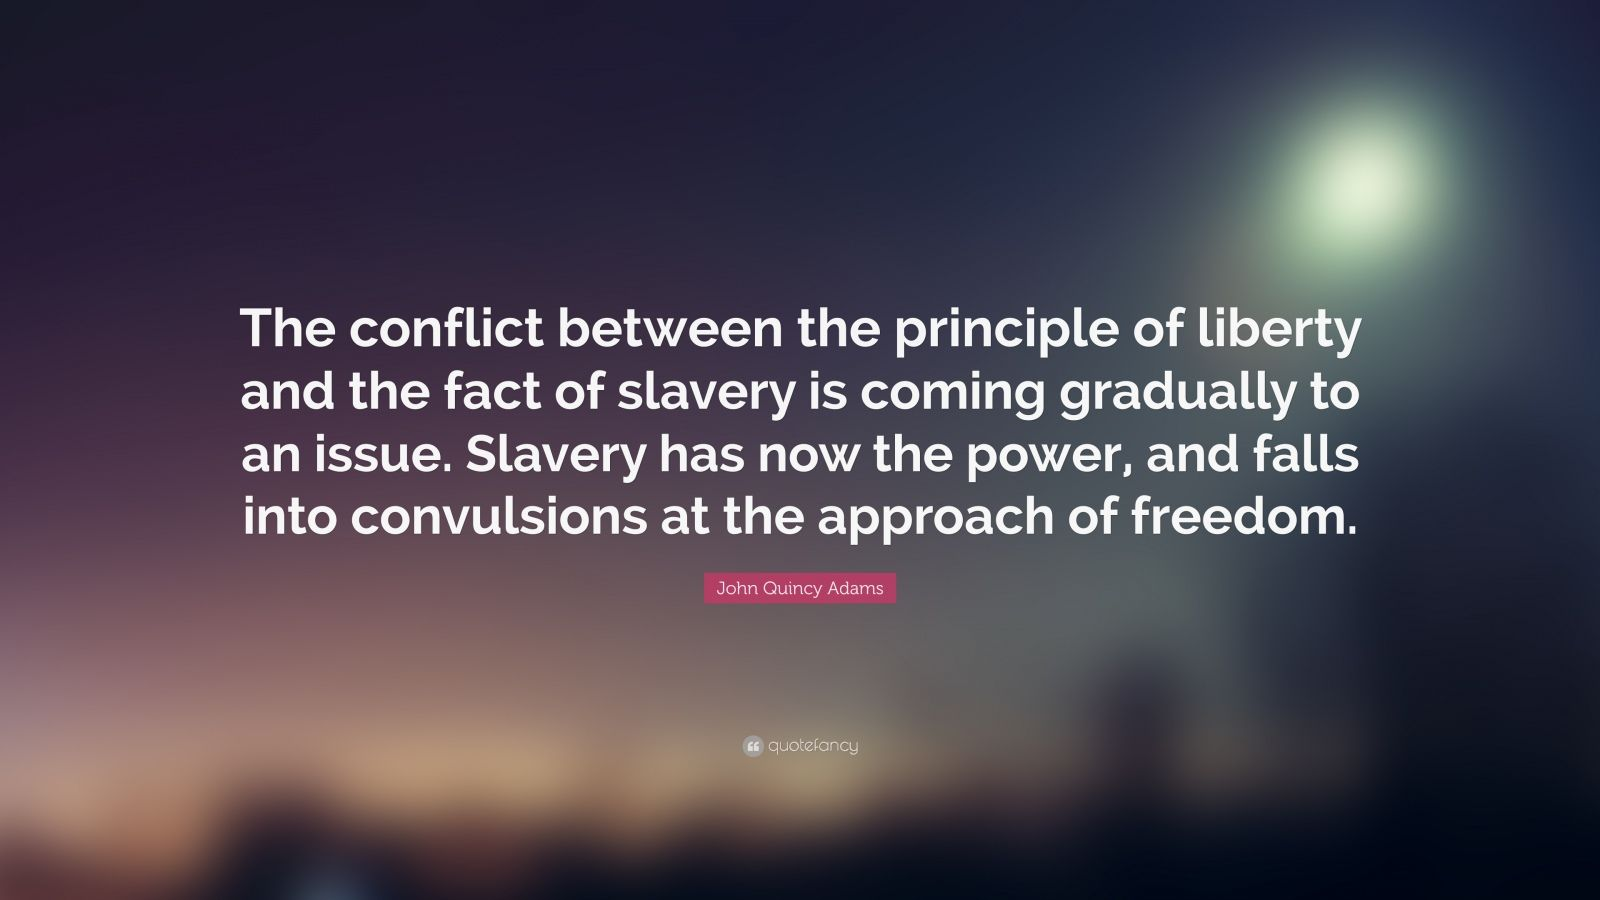 """John Quincy Adams Quote: """"The conflict between the principle of liberty and the fact of slavery is coming gradually to an issue. Slavery has now the power, and falls into convulsions at the approach of freedom."""""""